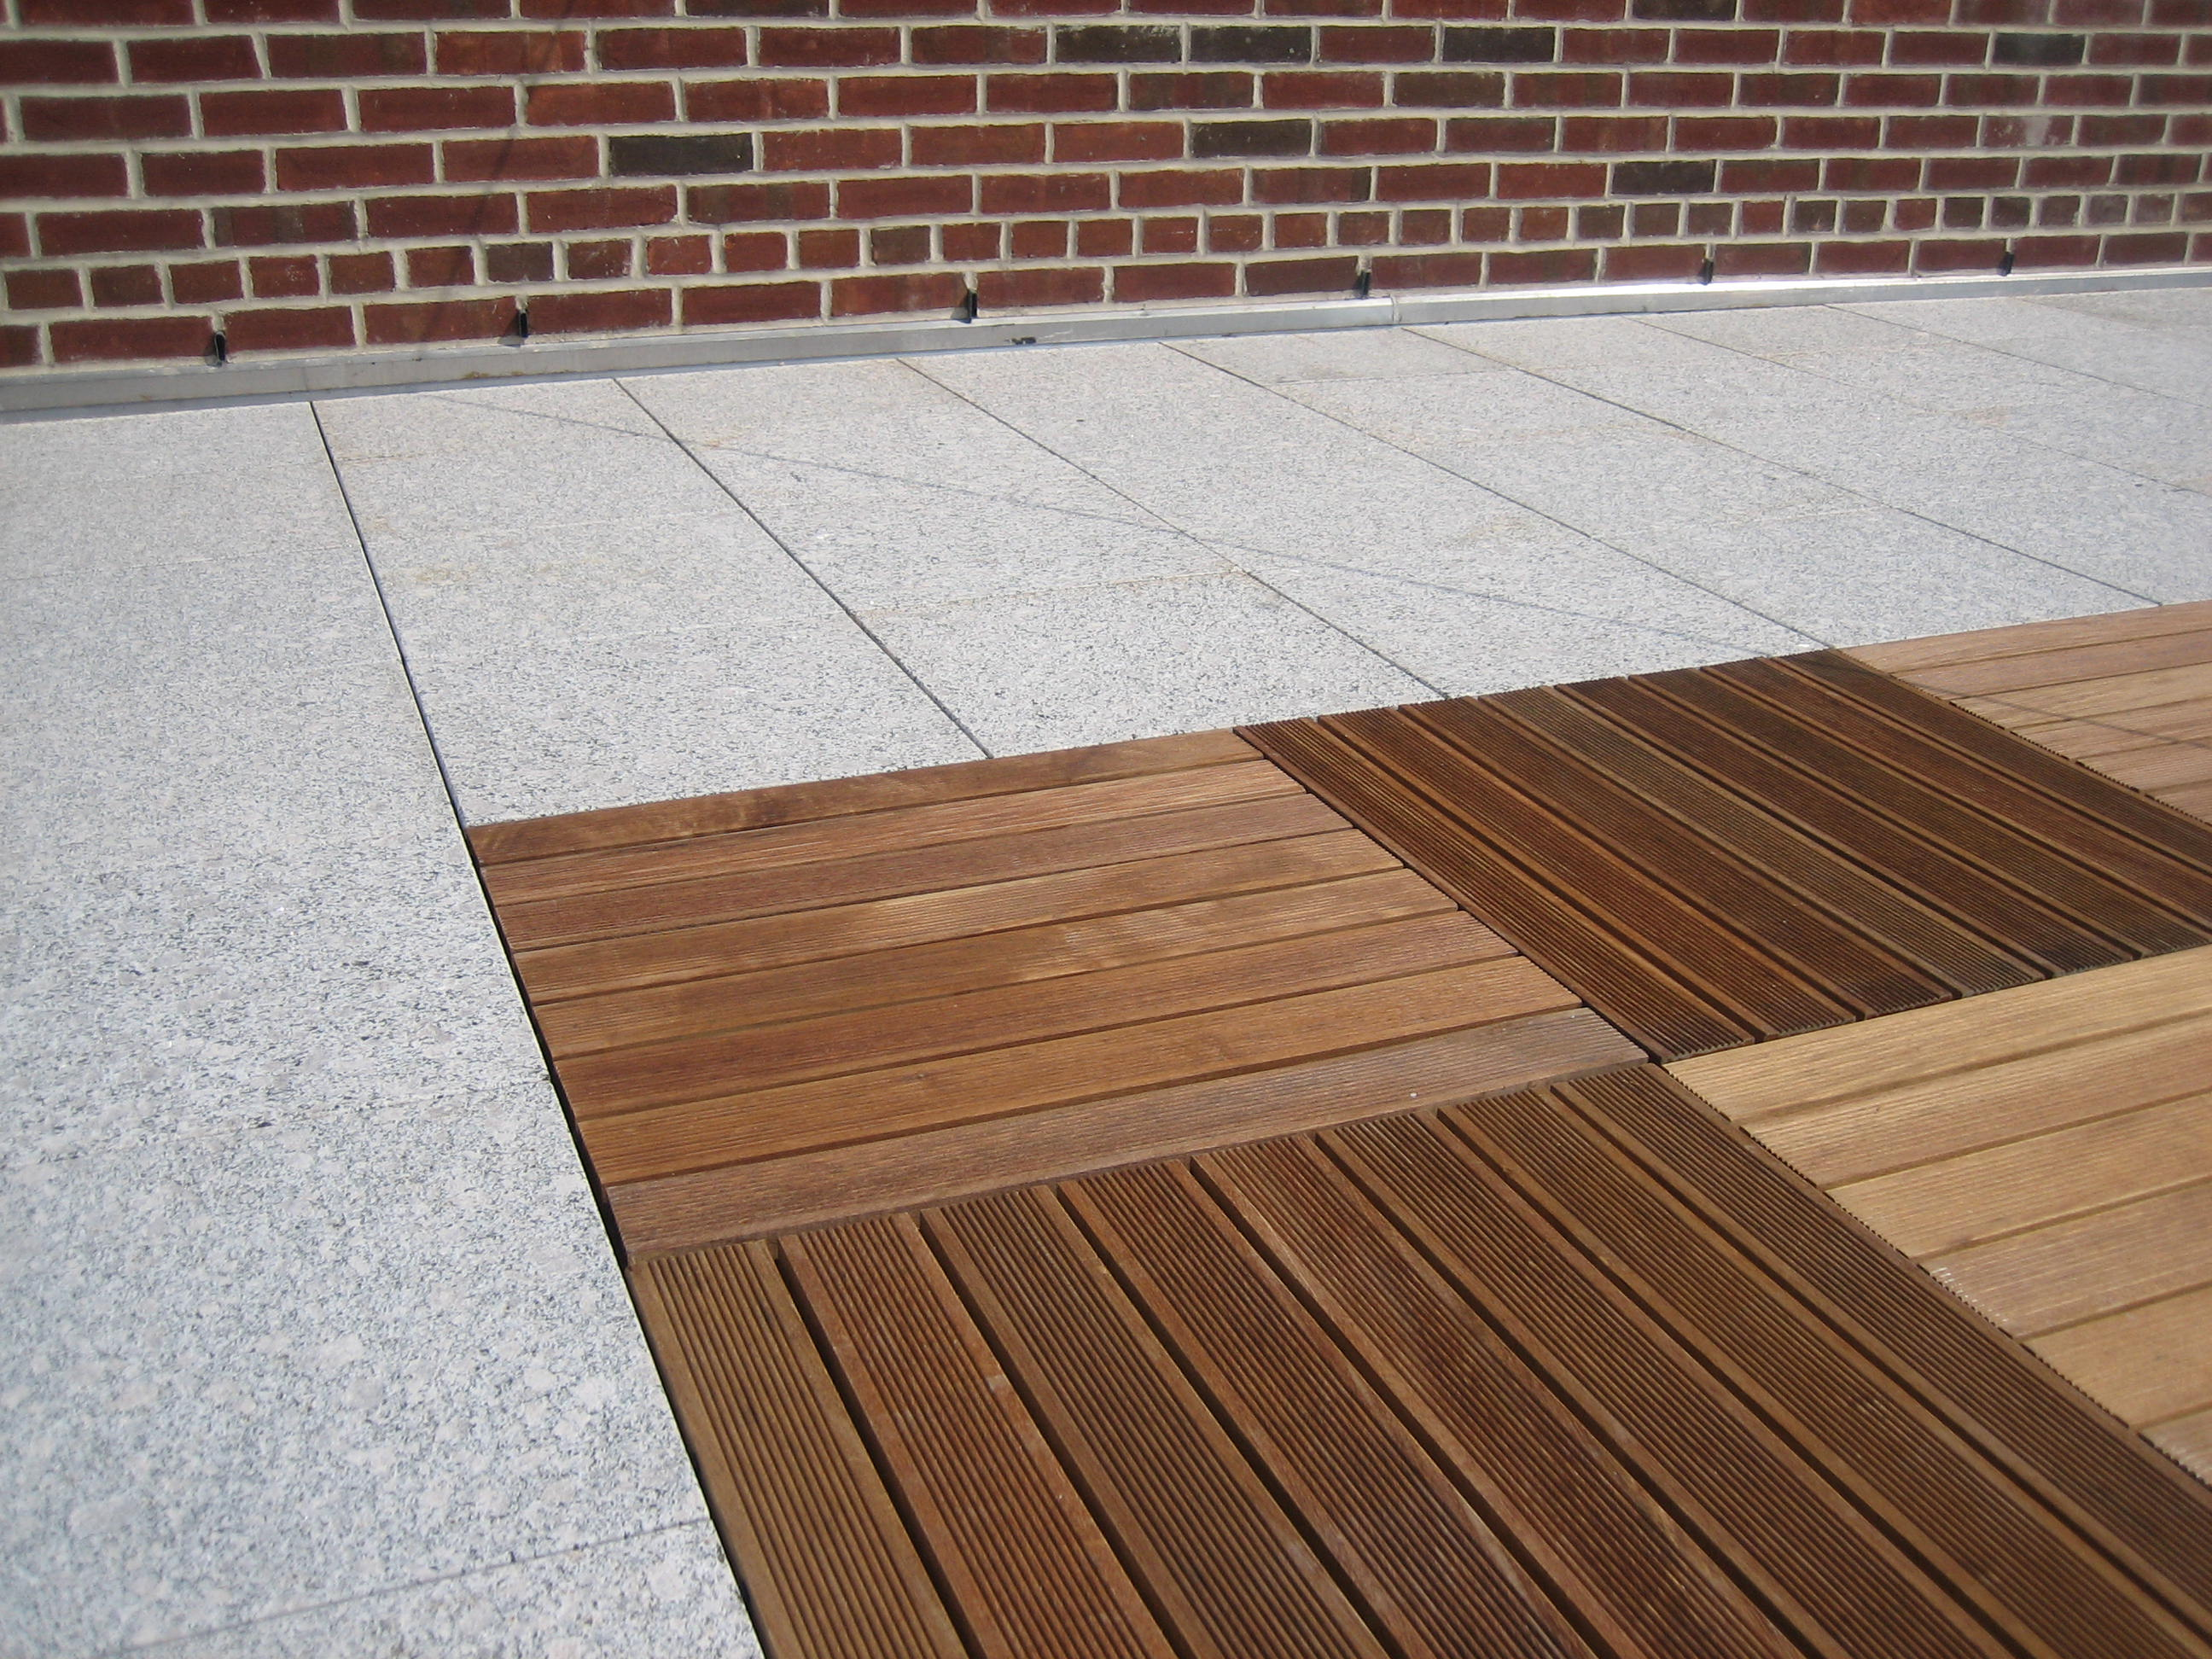 Roofdecks by material wood for Roof sheathing material options